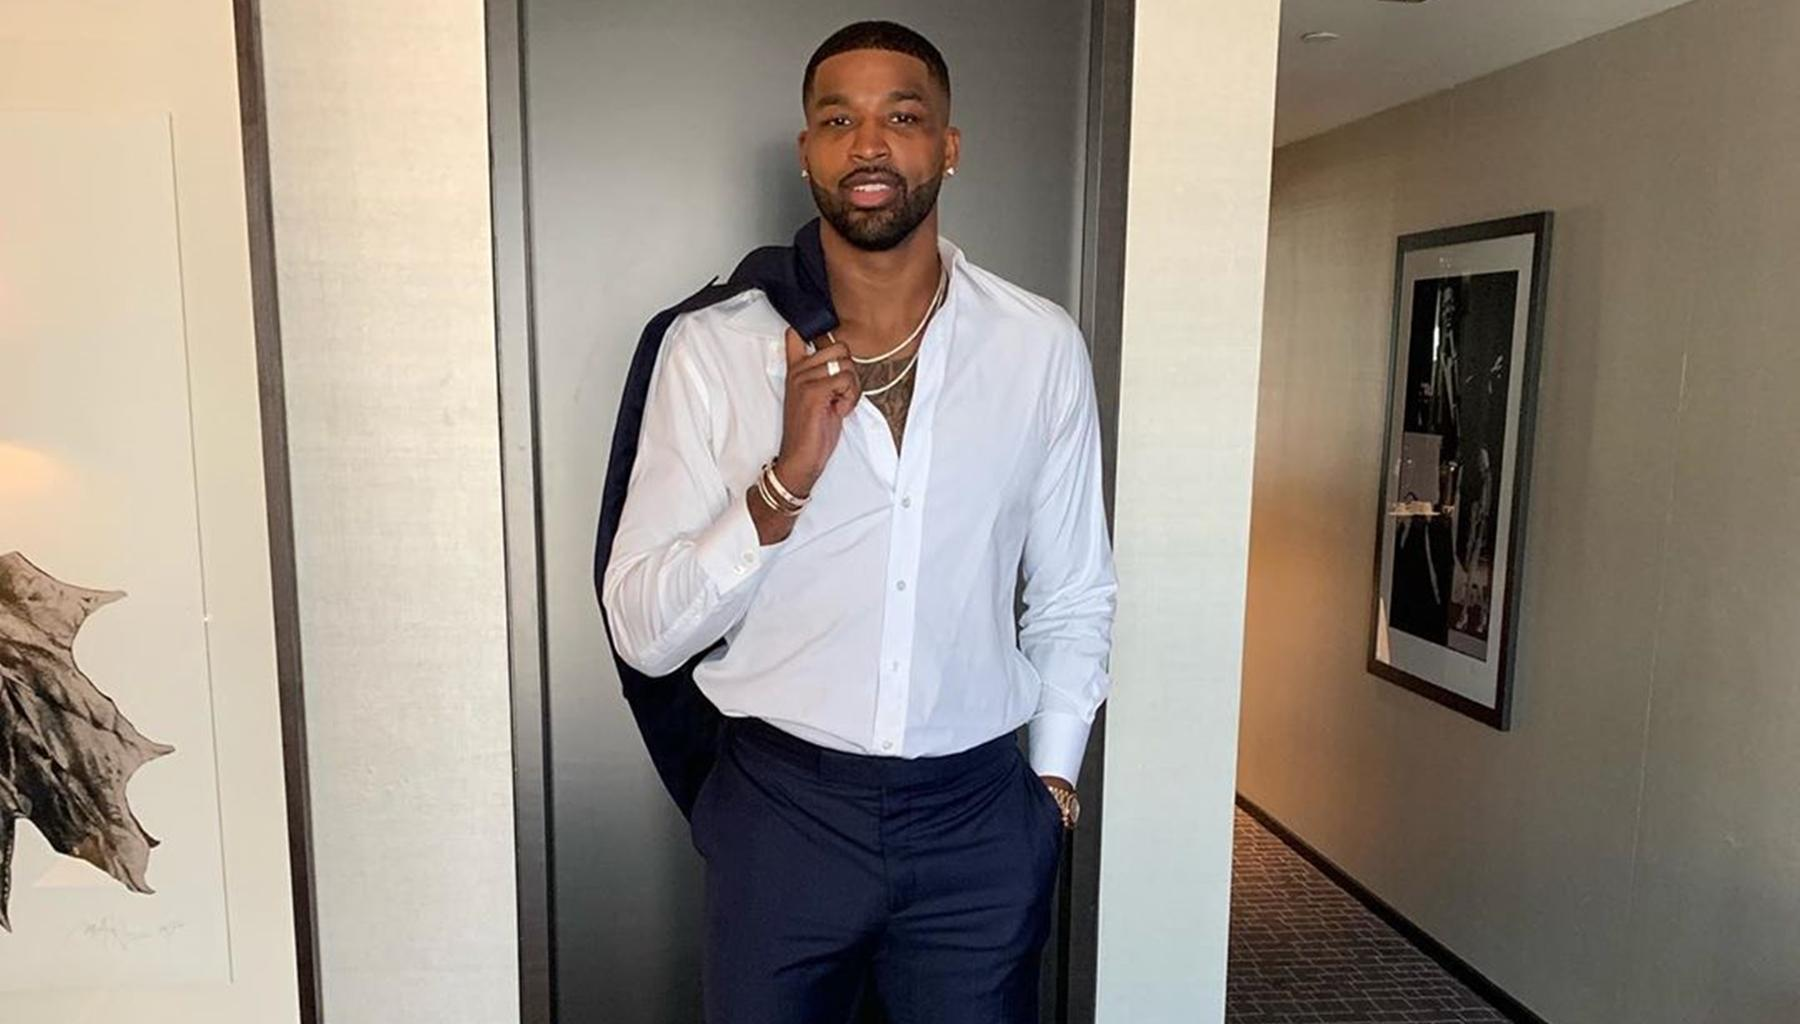 Tristan Thompson Shows Seductive Side In New Pictures And Makes This Confession About Being Single -- Khloe Kardashian And Jordan Craig's Fans Are Dragging Him For It